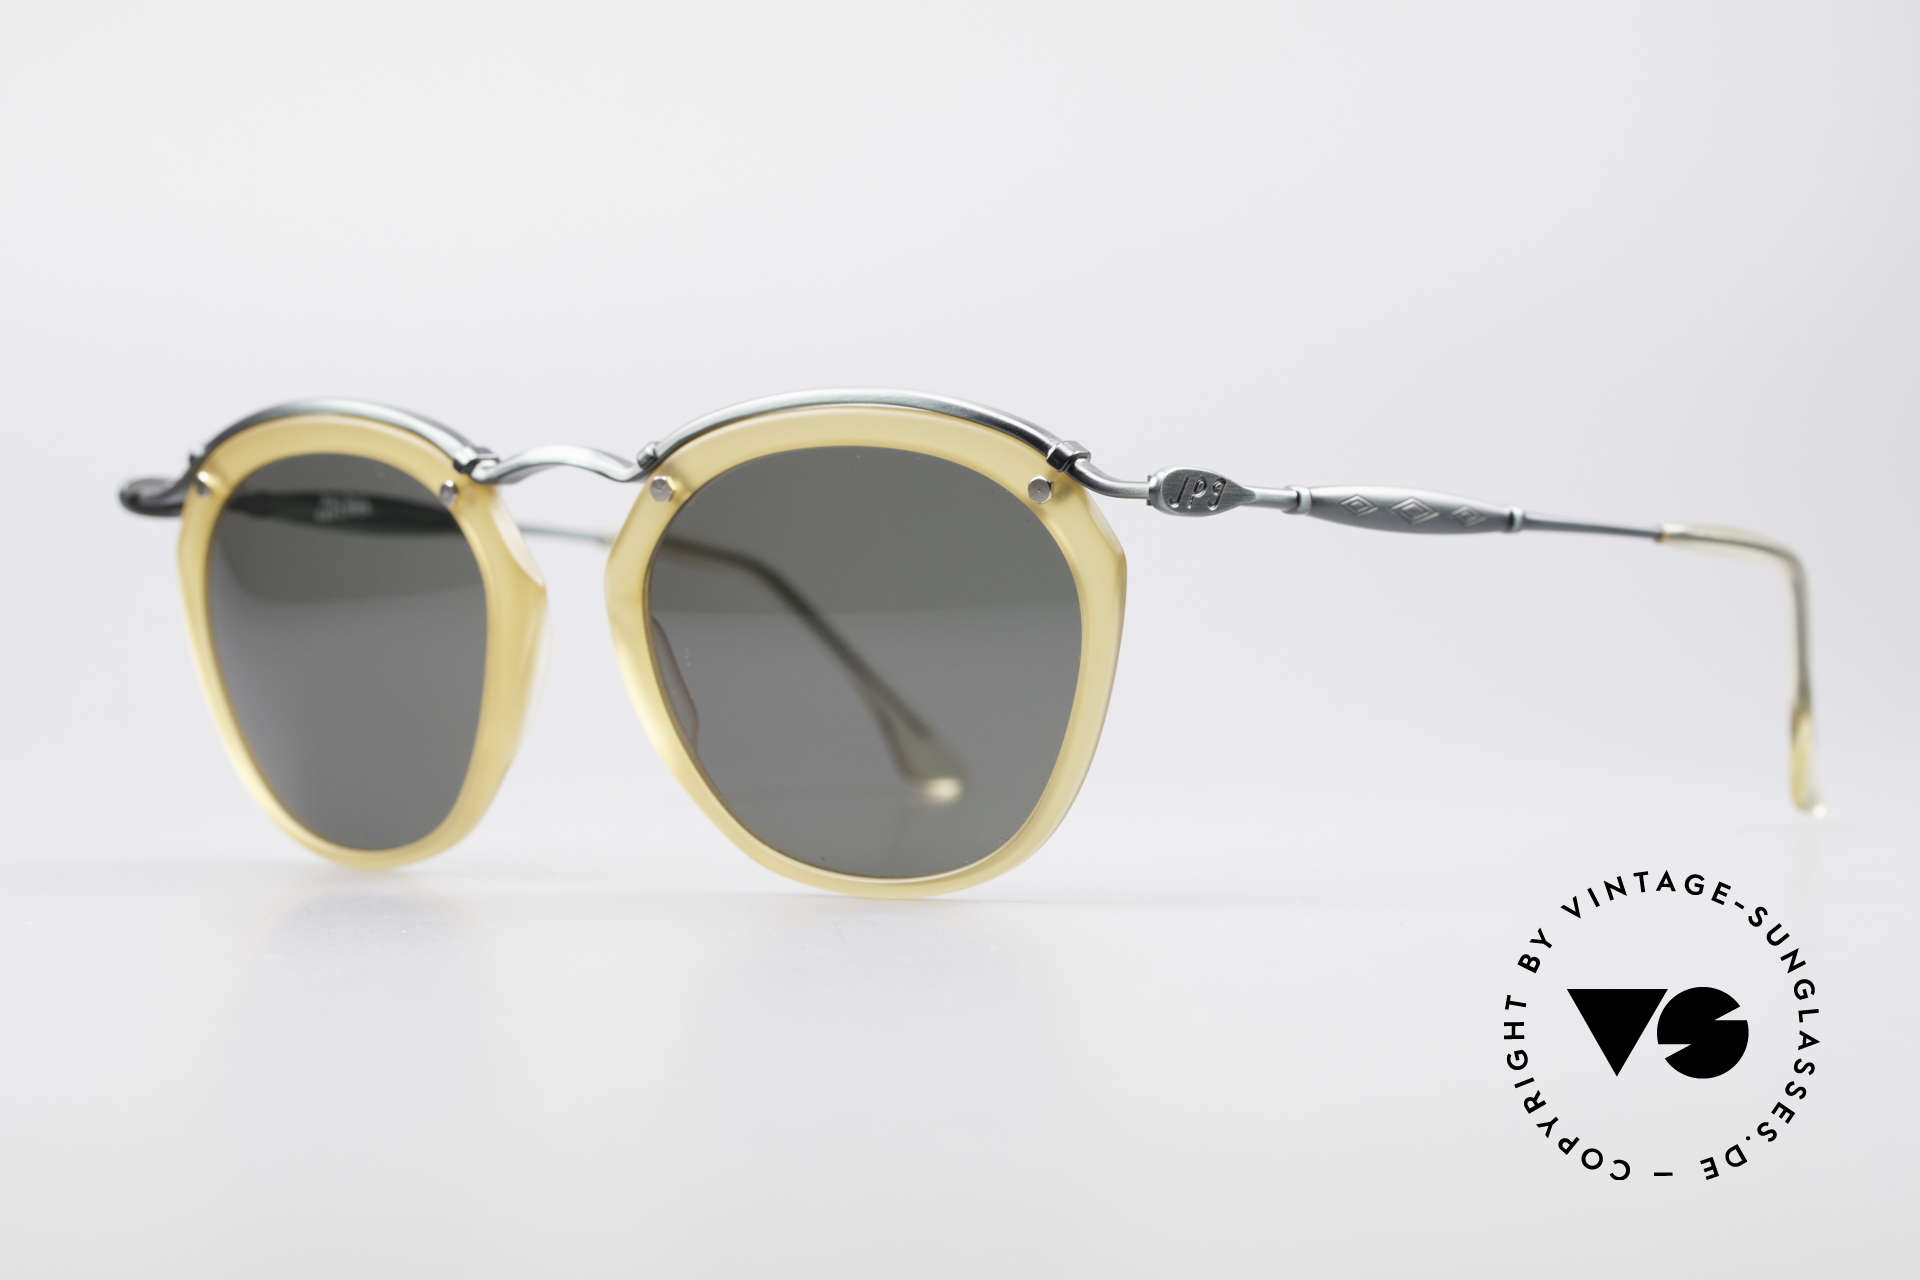 Jean Paul Gaultier 56-1273 Panto Style Sunglasses, interesting combination of materials and colors, Made for Men and Women